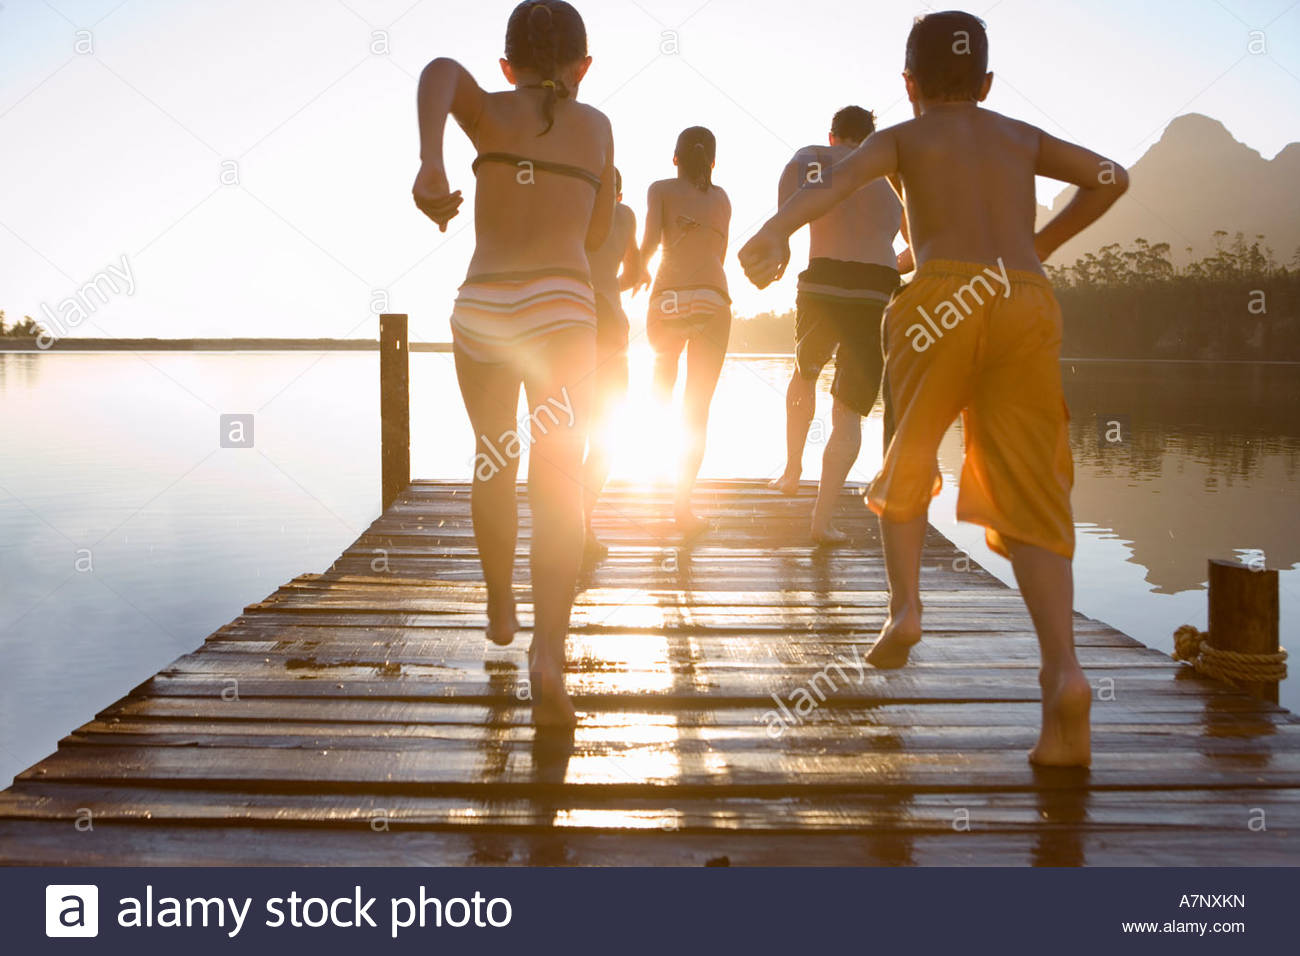 Kids Swimming In A Lake family in swimwear running along jetty jumping into lake at sunset